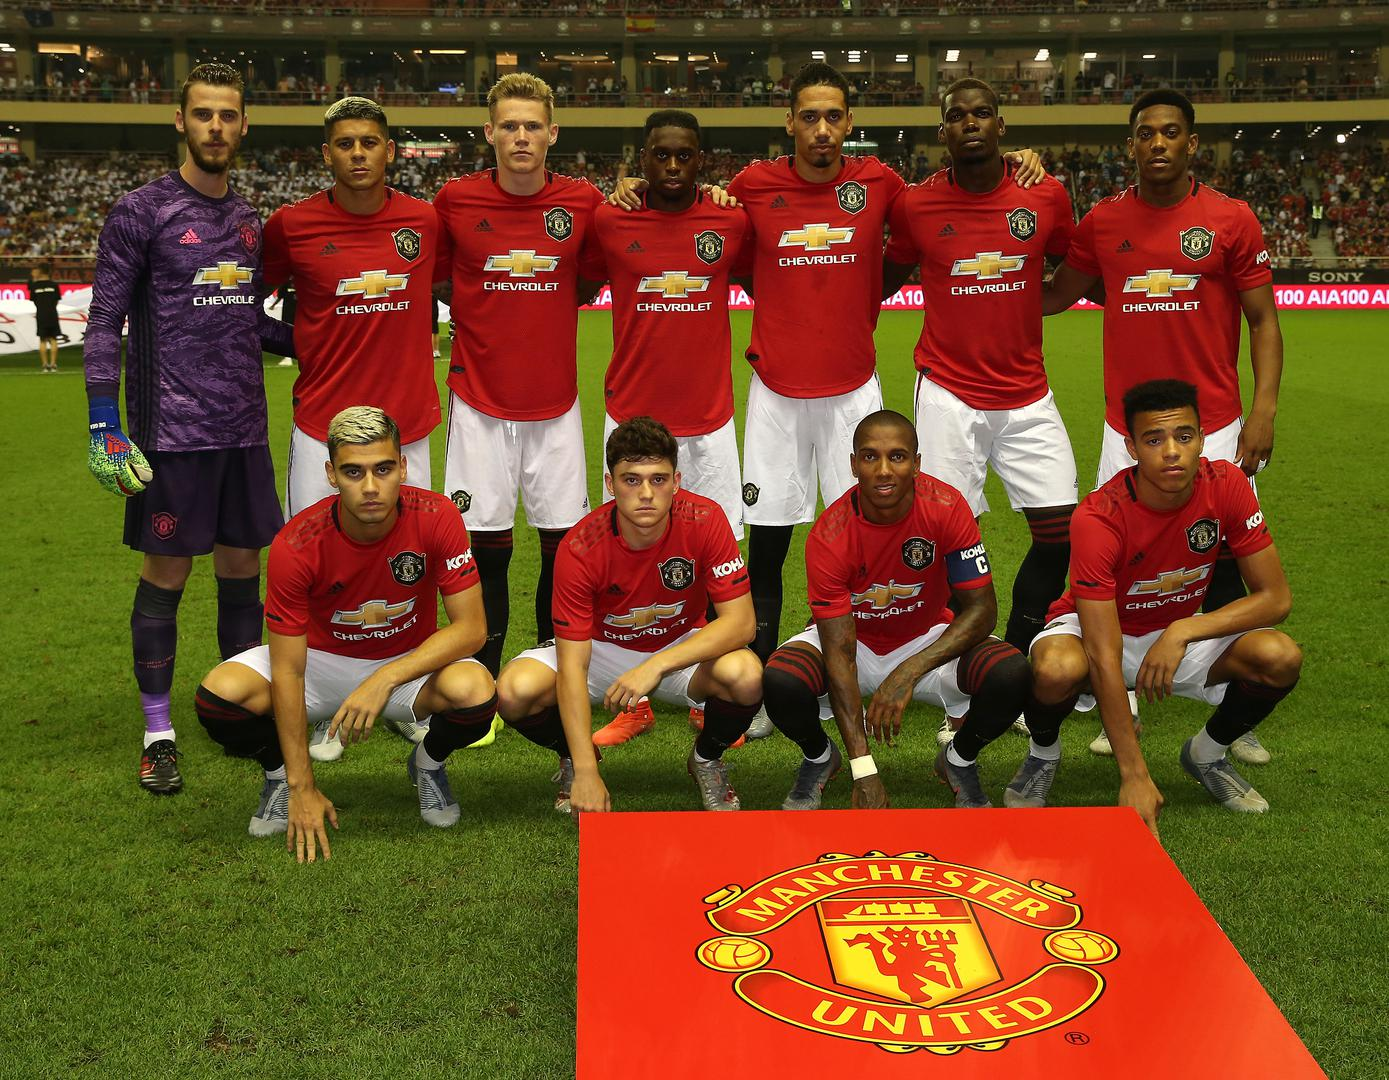 The United starting XI posing for a photo.